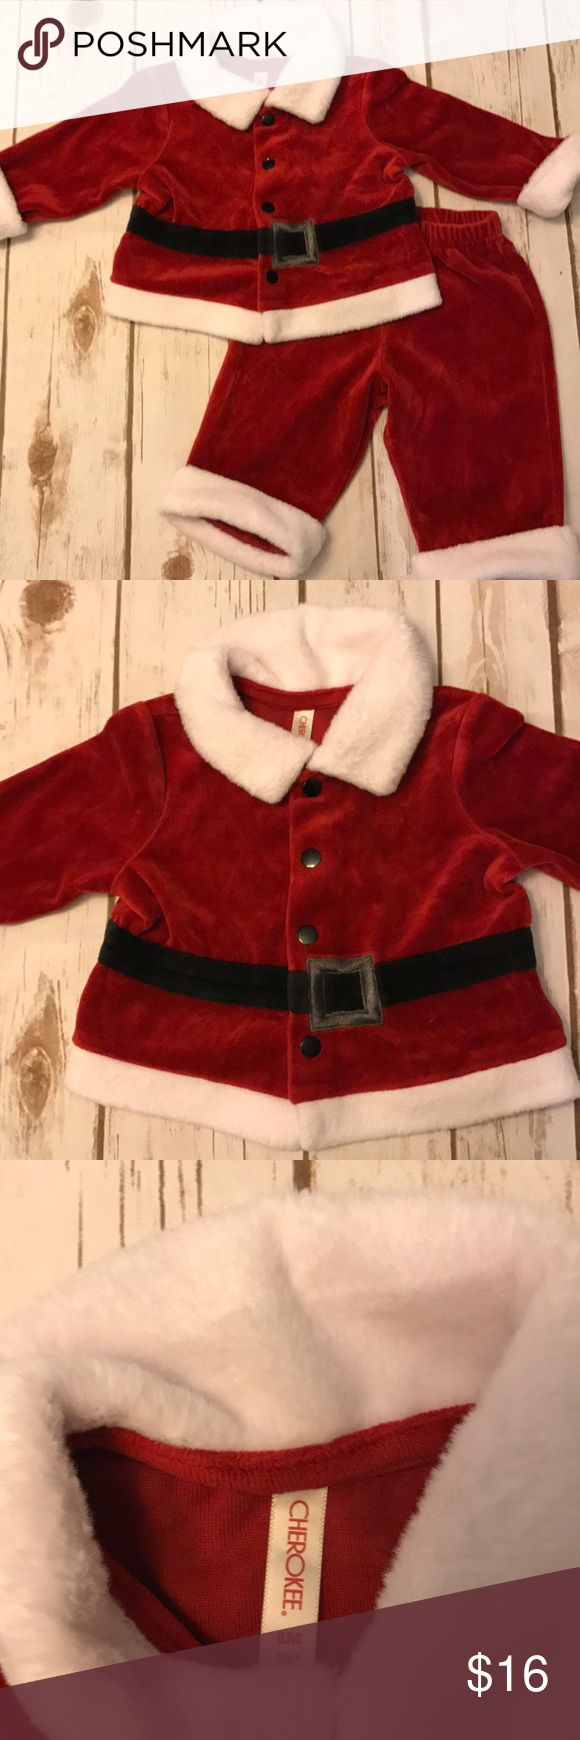 Baby Cherokee Brand Santa Holiday Outfit EUC! Cherokee brand sized 6 months unisex Santa outfit. Red and white fleece/velour material. Perfect for the holidays. Snap closure for top. Smoke free home. Cherokee Matching Sets